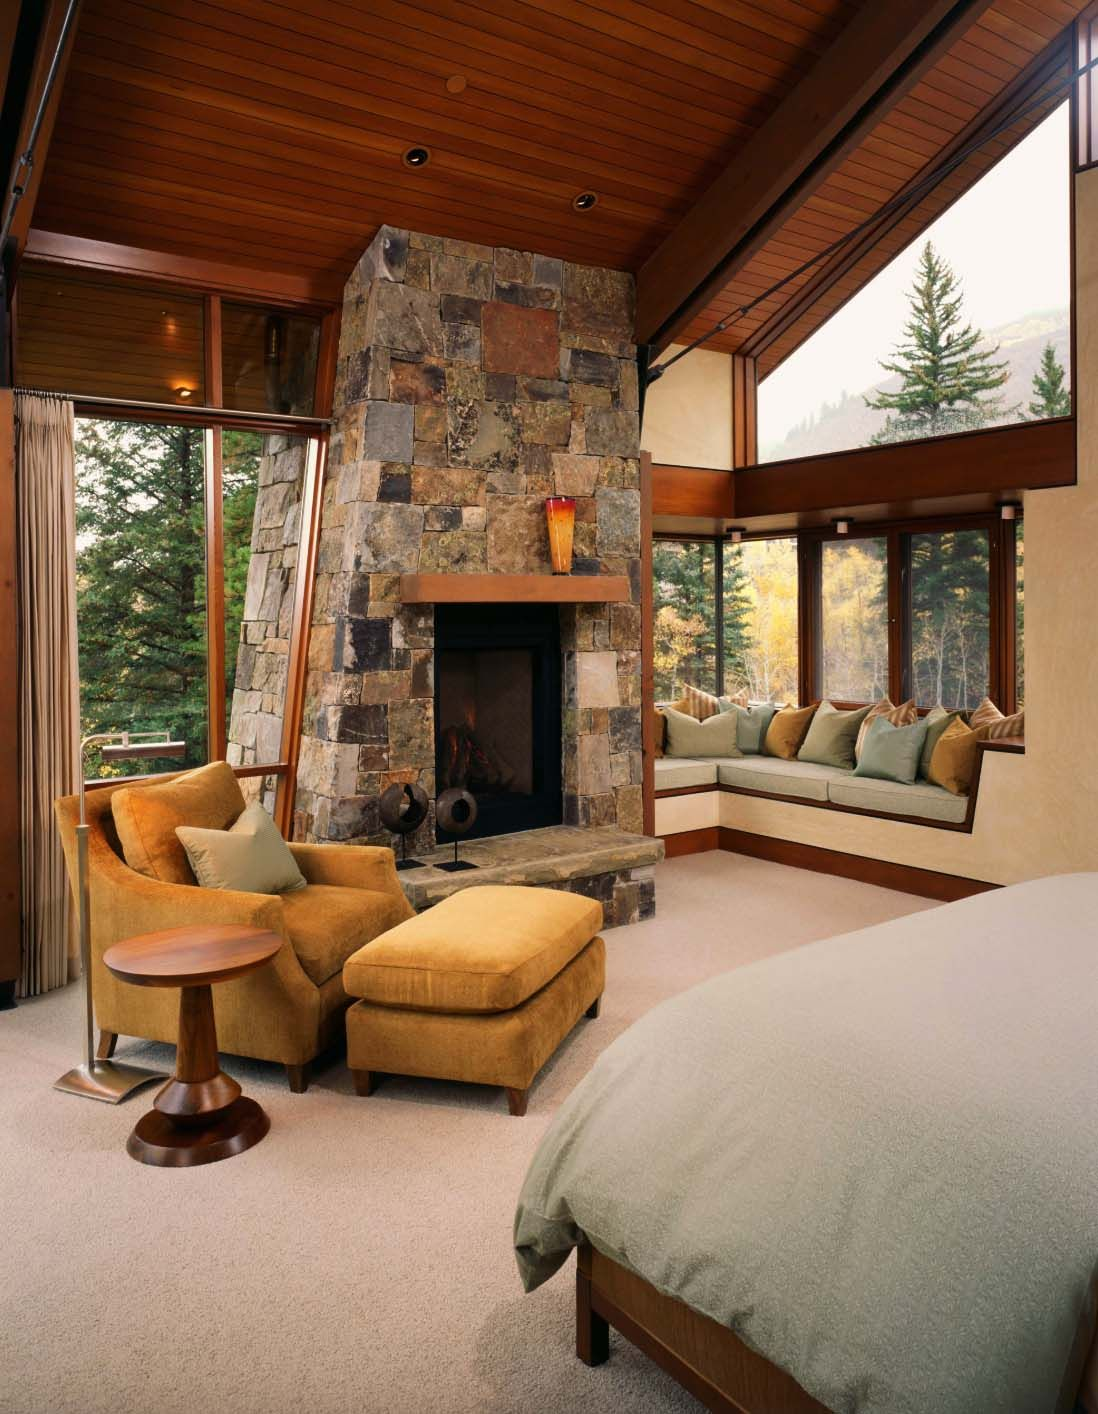 Best Modern Rustic Mountain Dwelling With Picturesque Setting 400 x 300